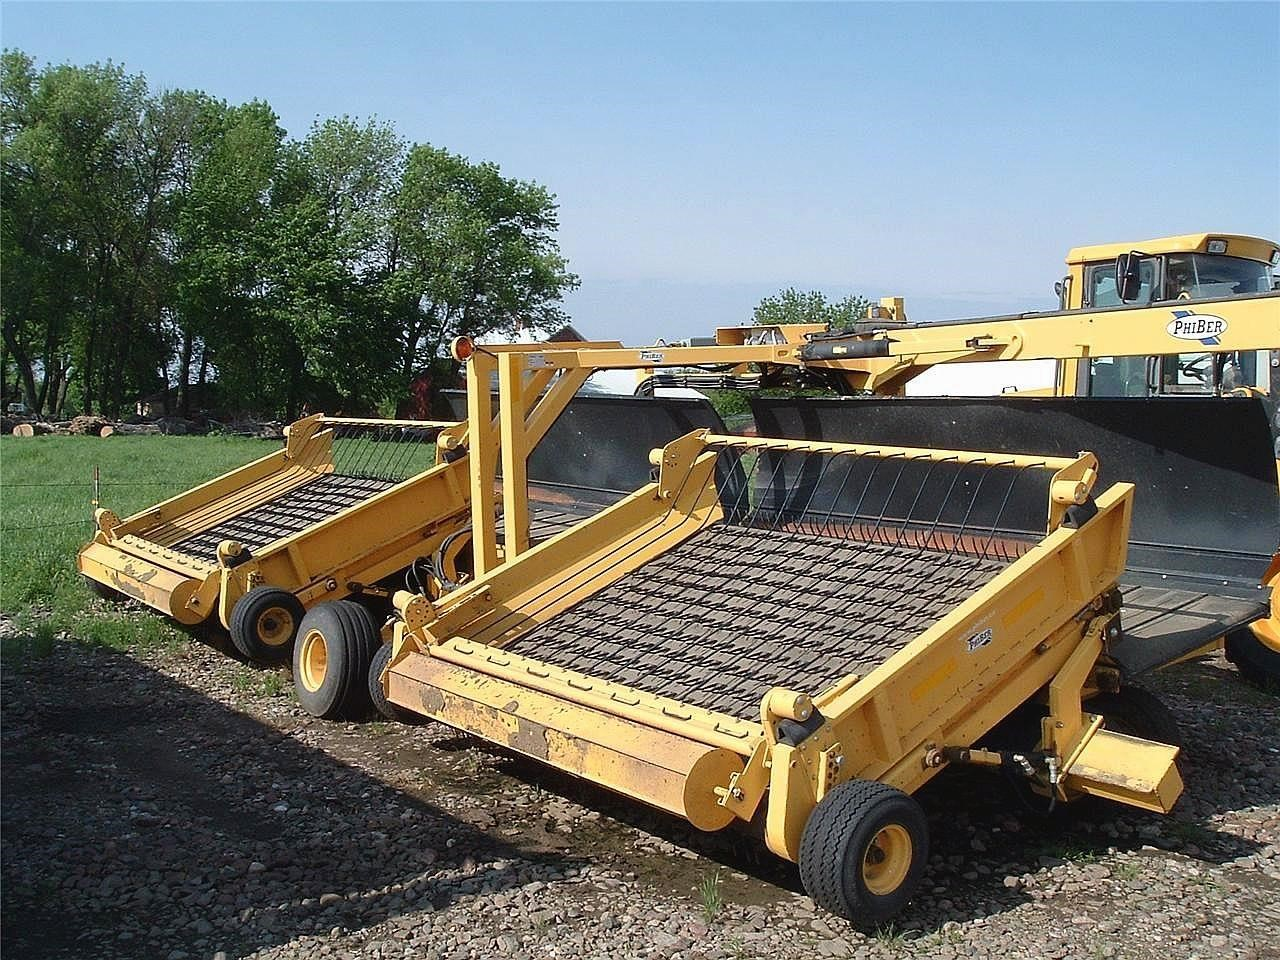 2010 PHIBER SM848 Windrow Inverter